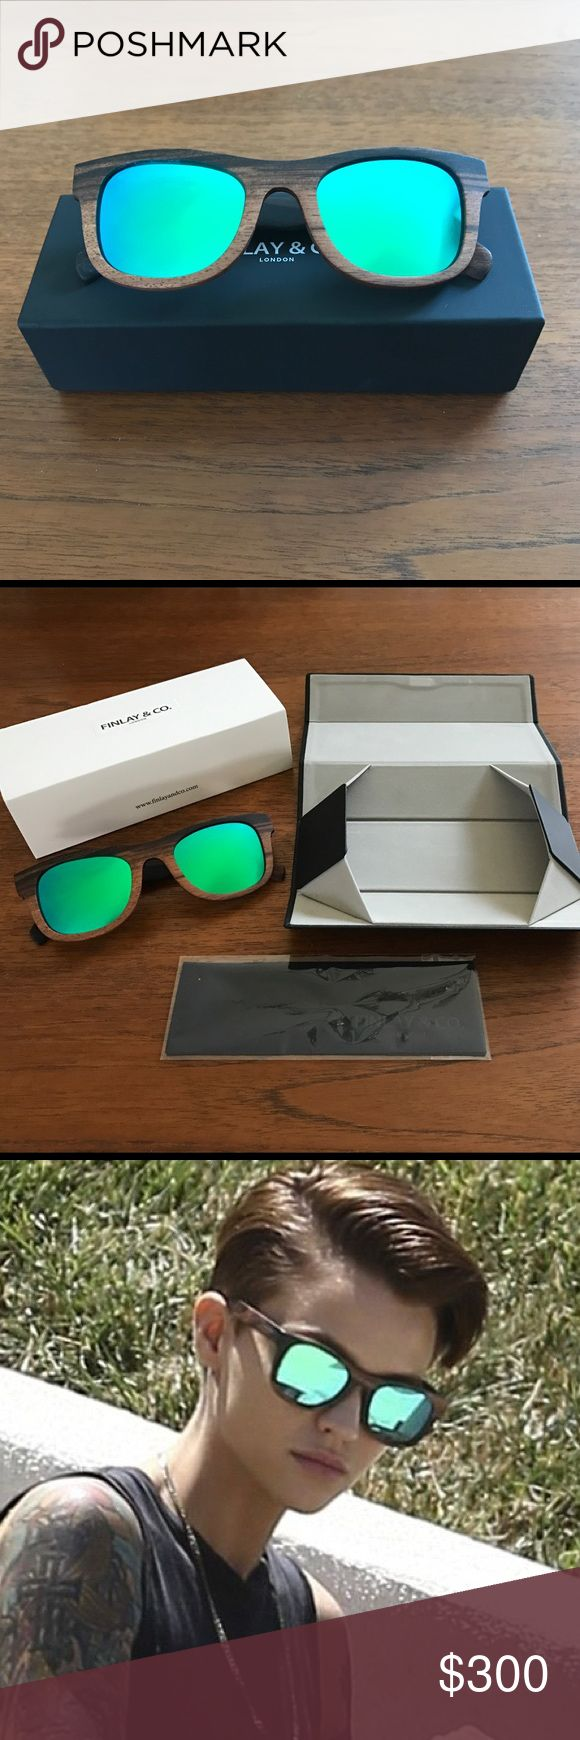 New Finlay & Co. Ledbury Sunglasses, Green NIB Finlay & Co. Ledbury Sunglasses. Perfect condition, never worn. Authentic, handmade in Italy, limited edition & sold out. As seen on Ruby Rose & Jenson Button. Wood frames, green mirror lenses, 100% UV protection, unisex. comes with box, sleeve and cleaning cloth. Finlay & Co.  Accessories Sunglasses